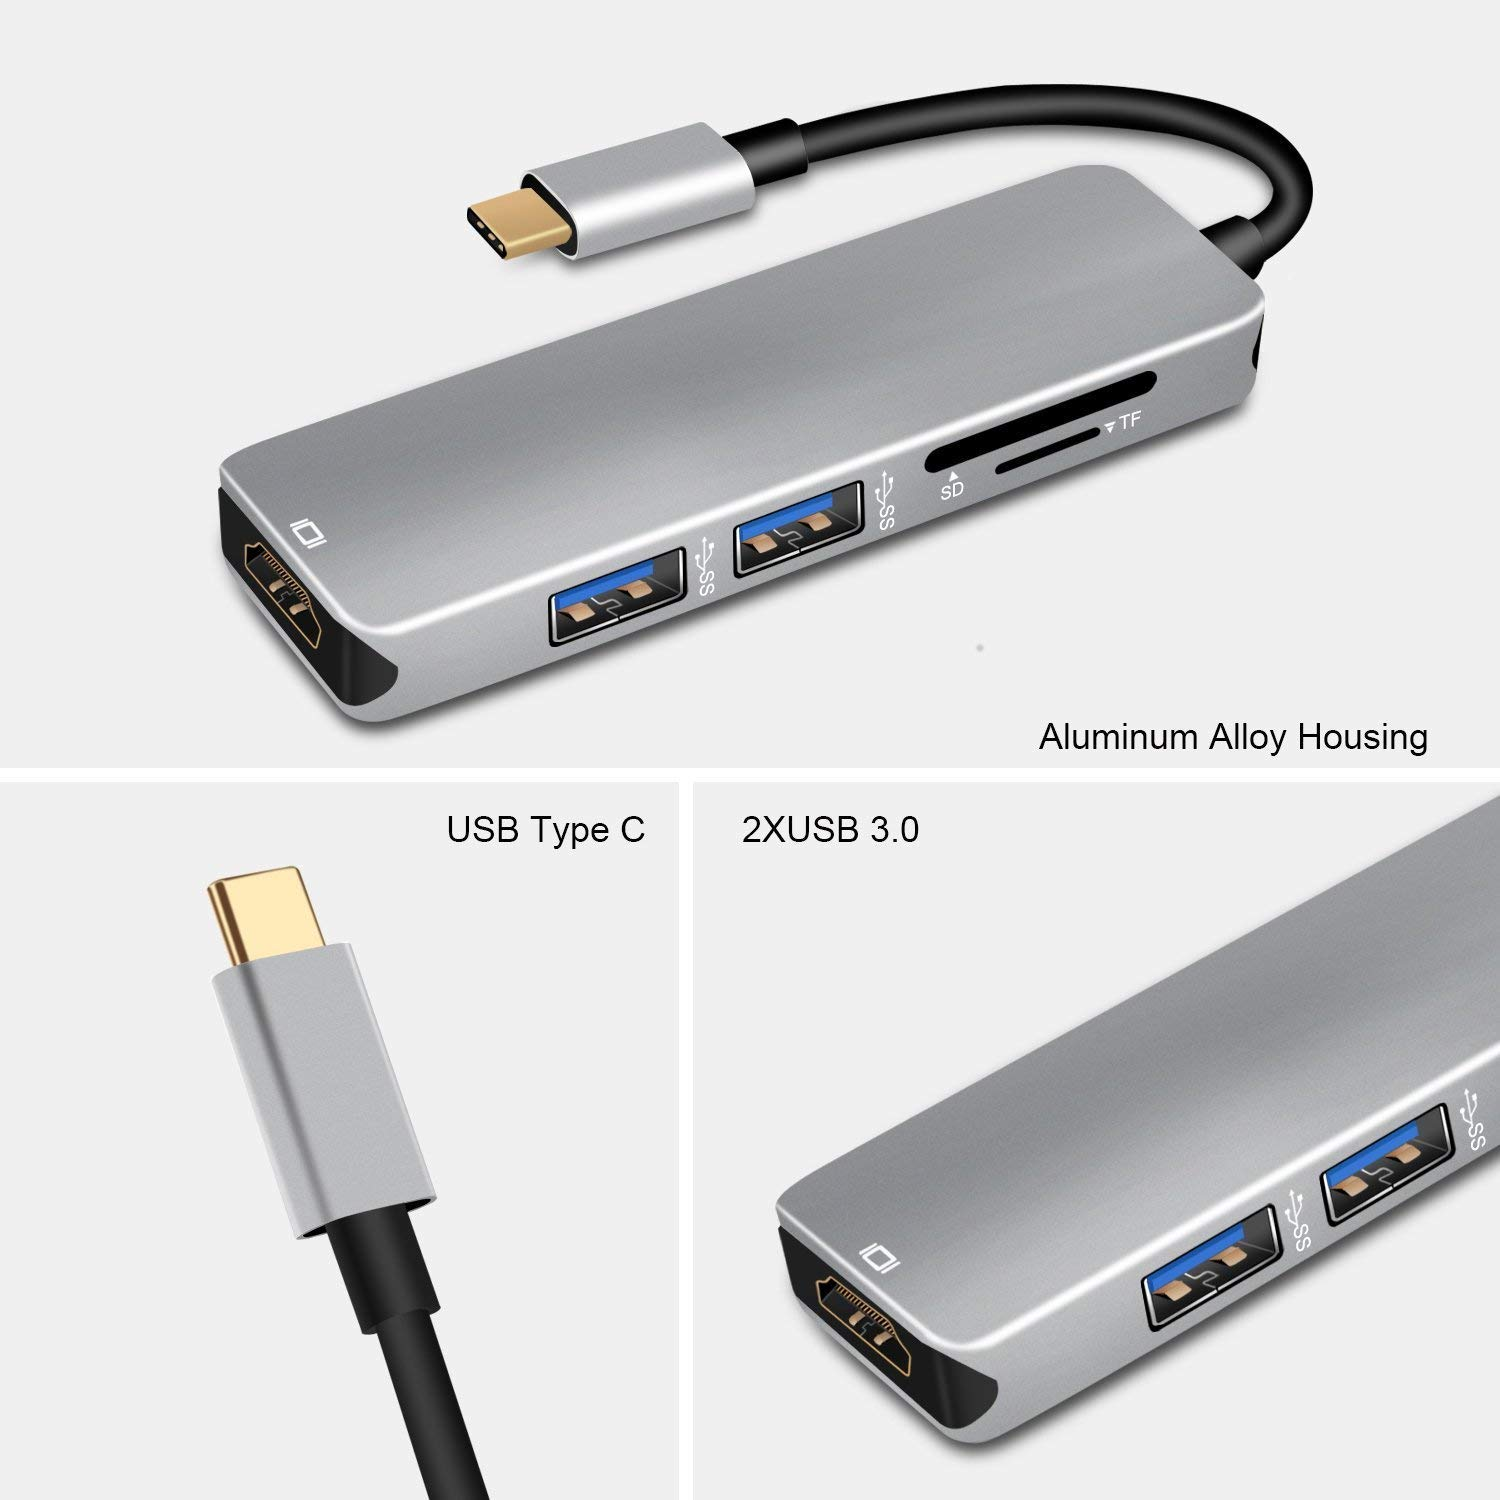 USB Type C Hub, 5 in 1 MacBook Pro Air USBC Adapter with 4K HDMI, 2 USB 3.0 Ports, SD & Micro SD Card Reader for MacBook Pro 2019-2016,MacBook Air ...